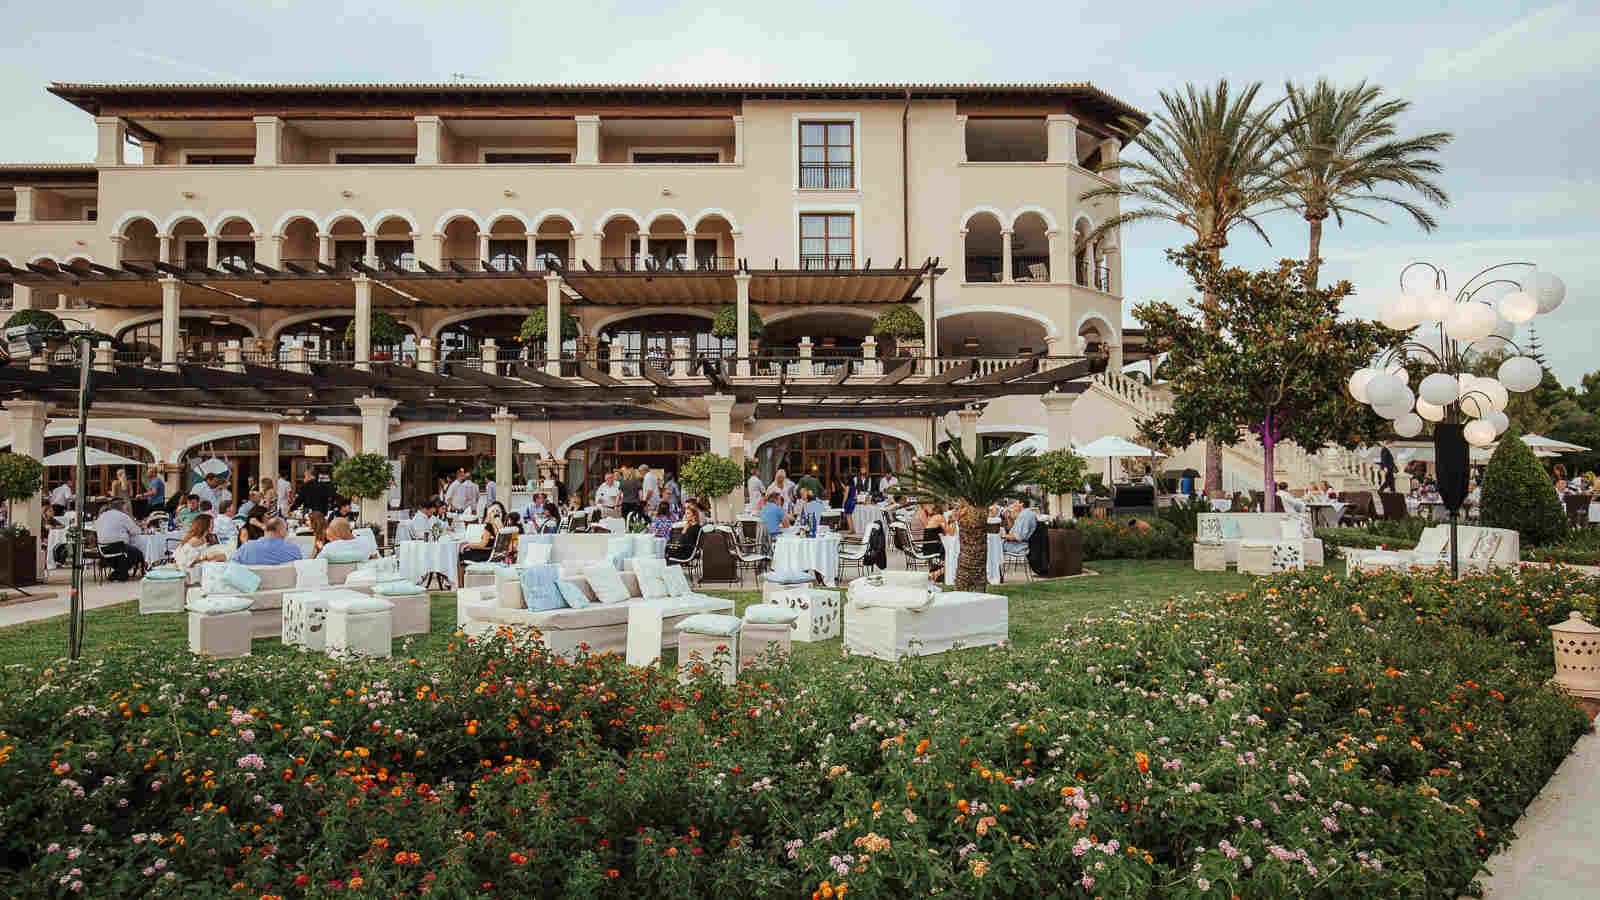 An exclusive tasting experience at The St.Regis Mardavall Majorca